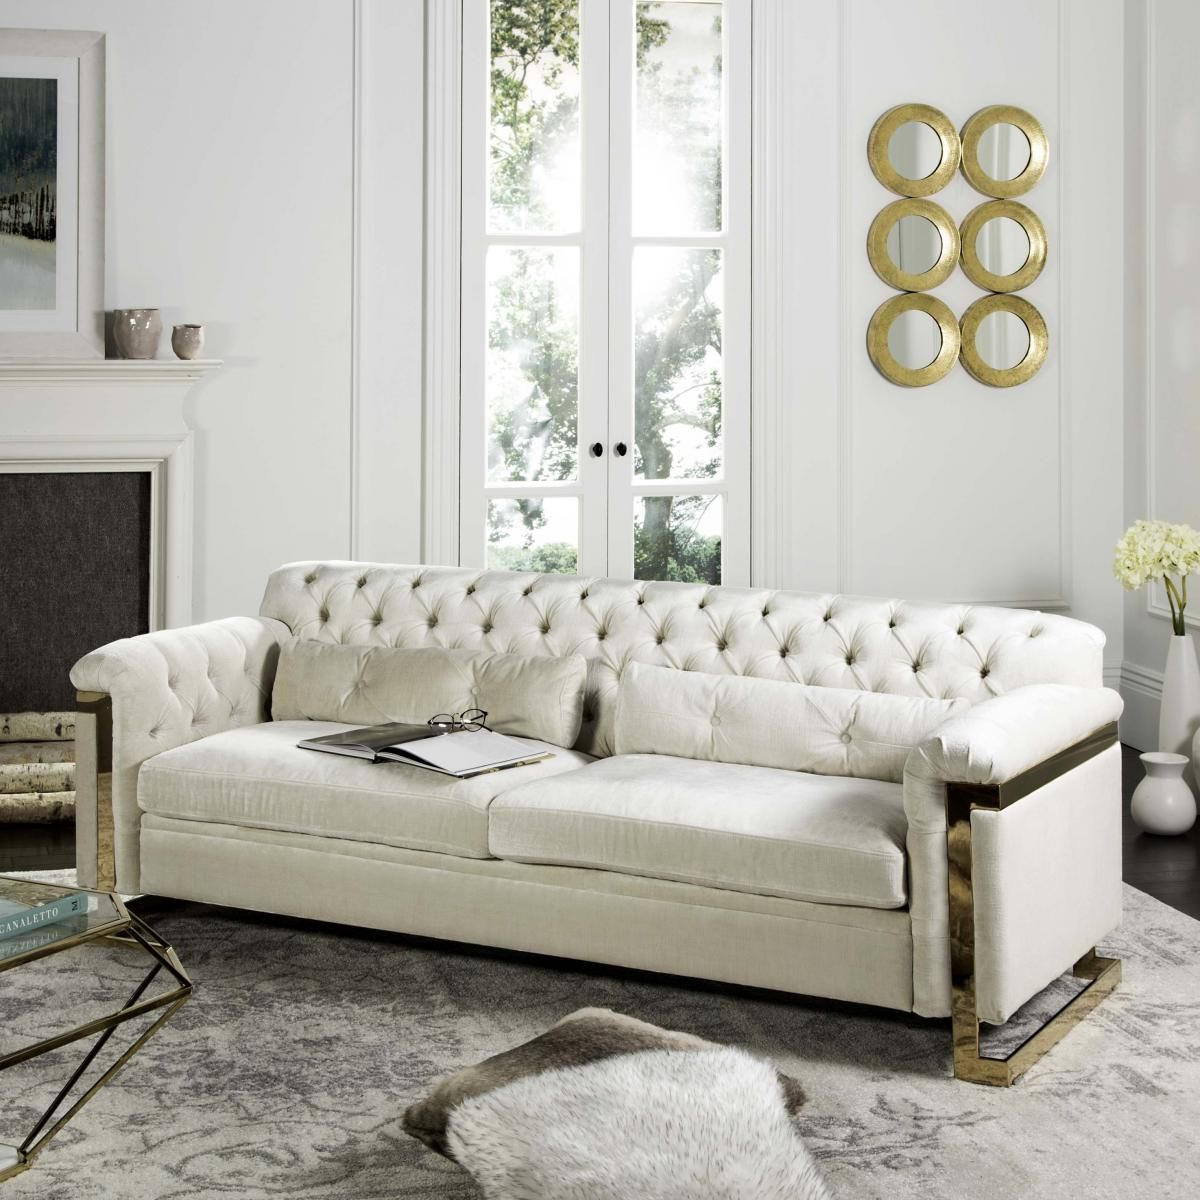 Awesome Safavieh Sofa Fresh 83 With Additional Table Ideas